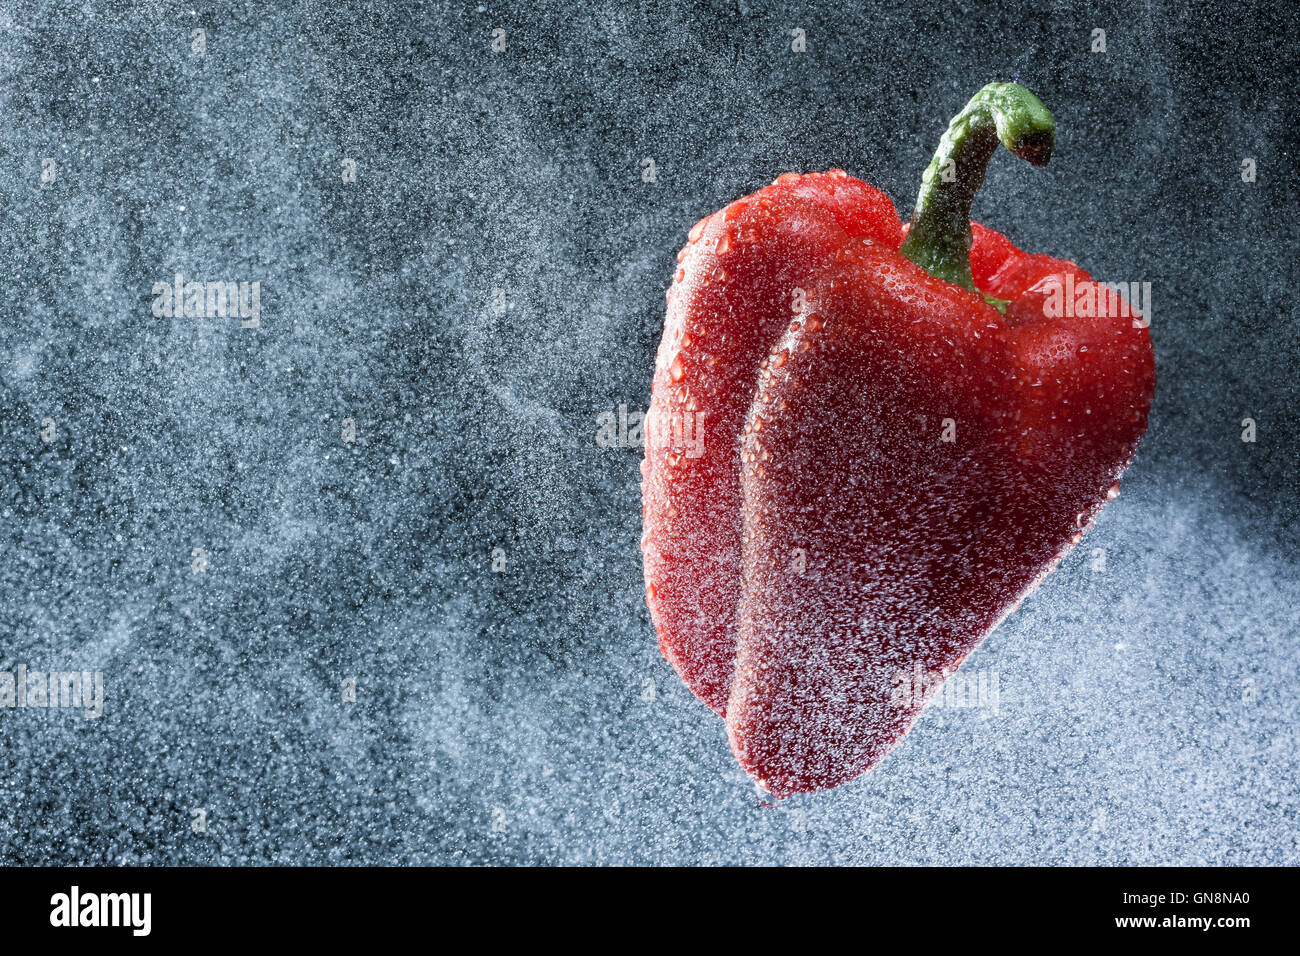 Red pepper in a spray against a black background. A series of fruits and vegetables in motion. - Stock Image